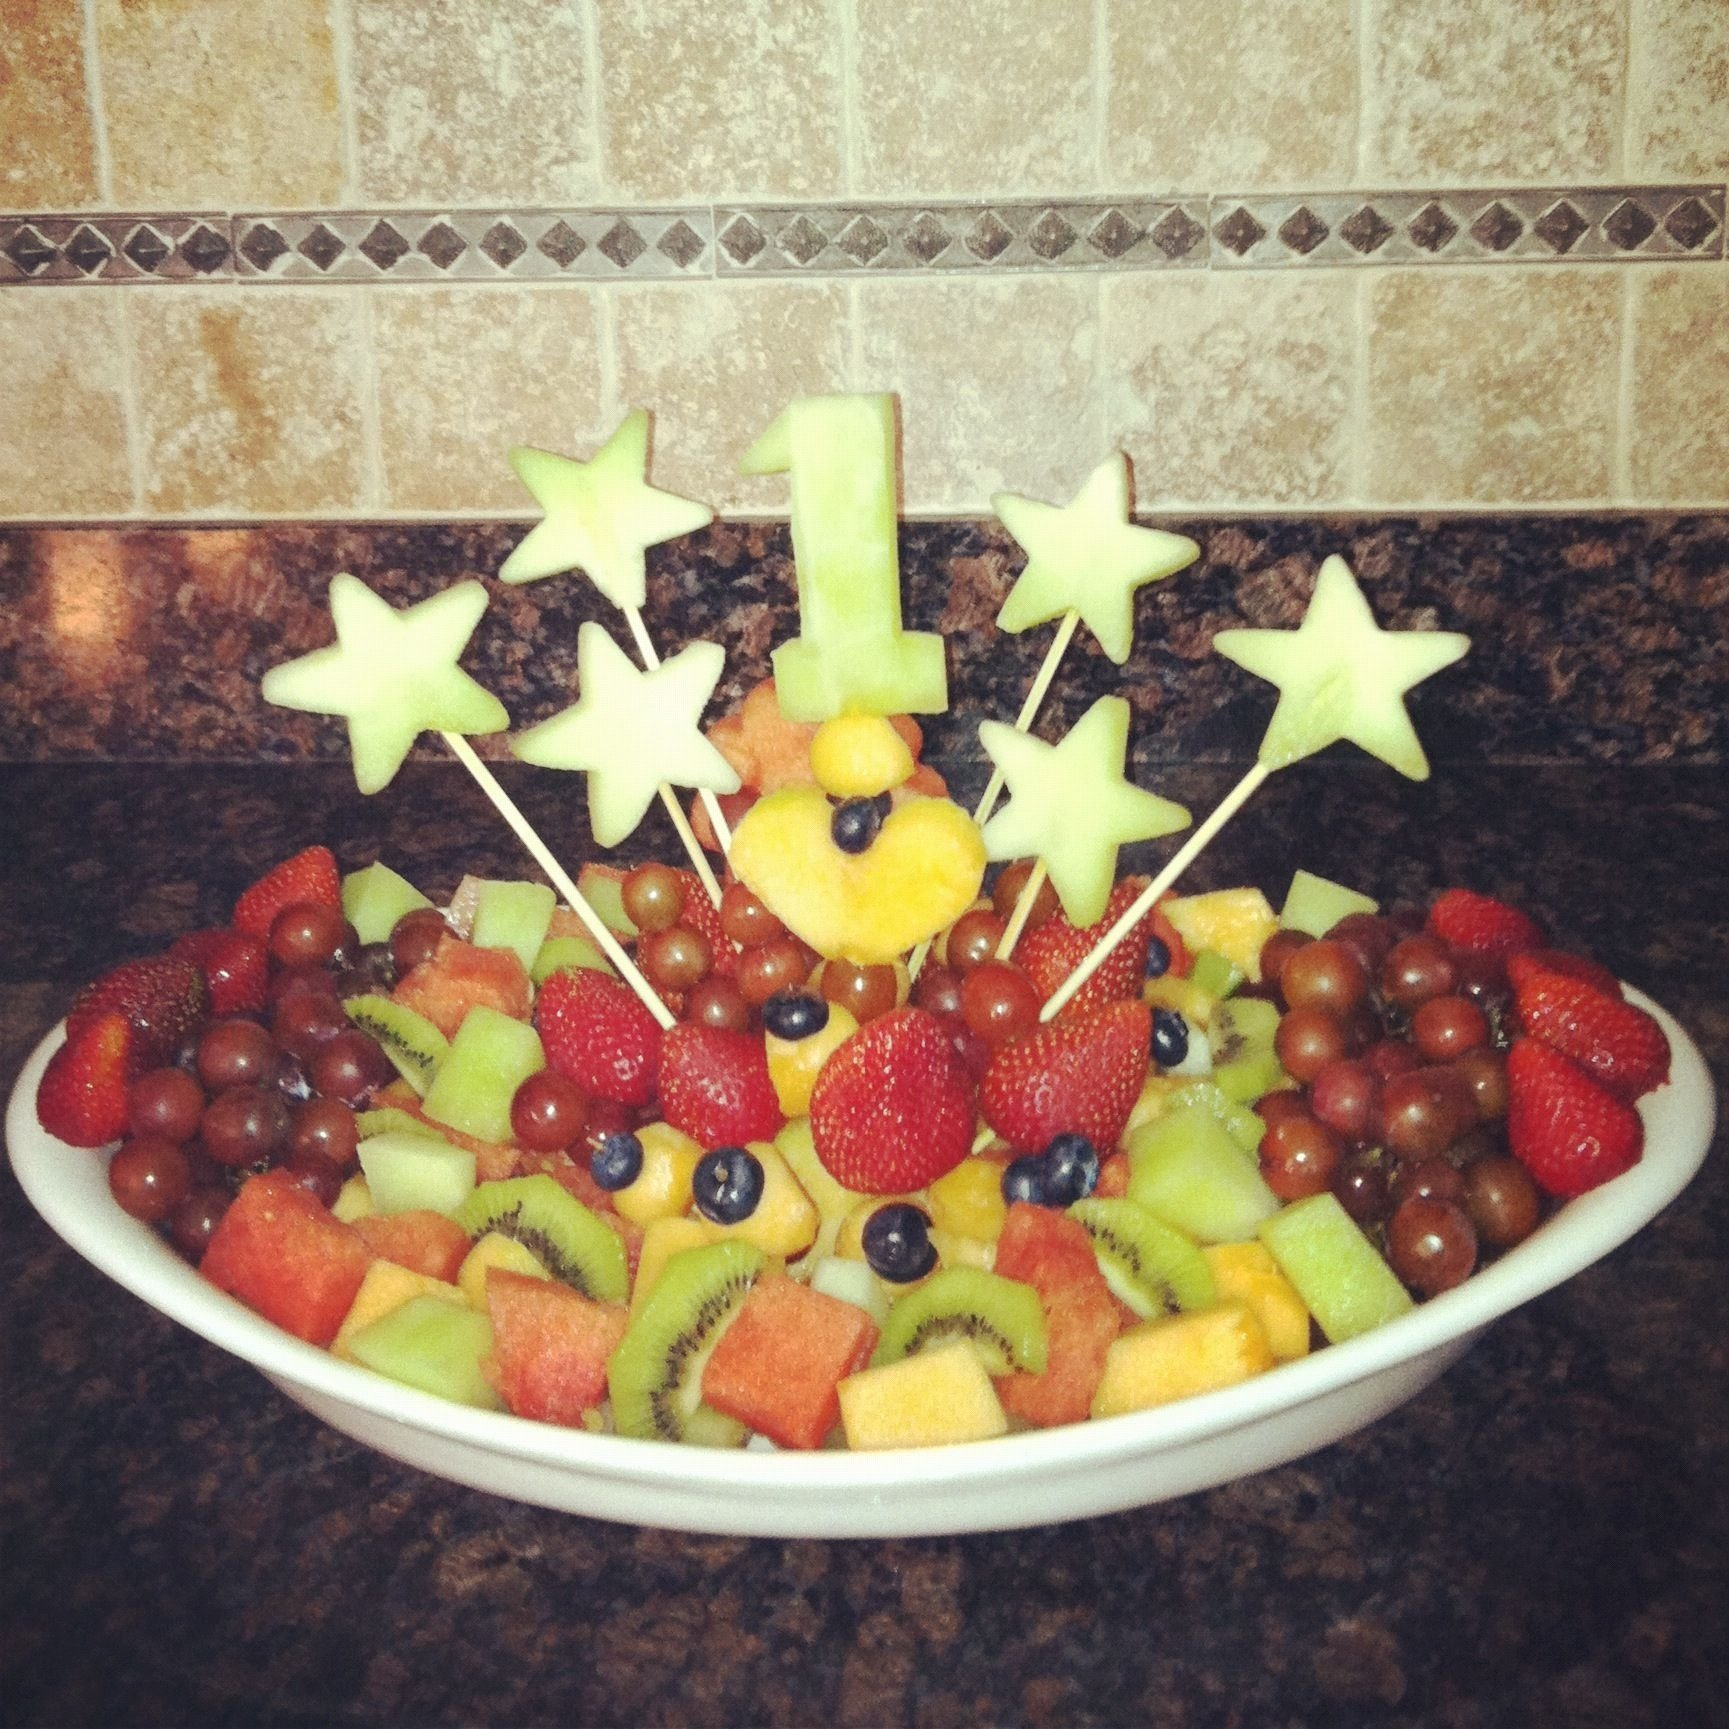 10 Attractive Fruit Tray Ideas For Parties first birthday fruit platter food and drinks pinterest 2021